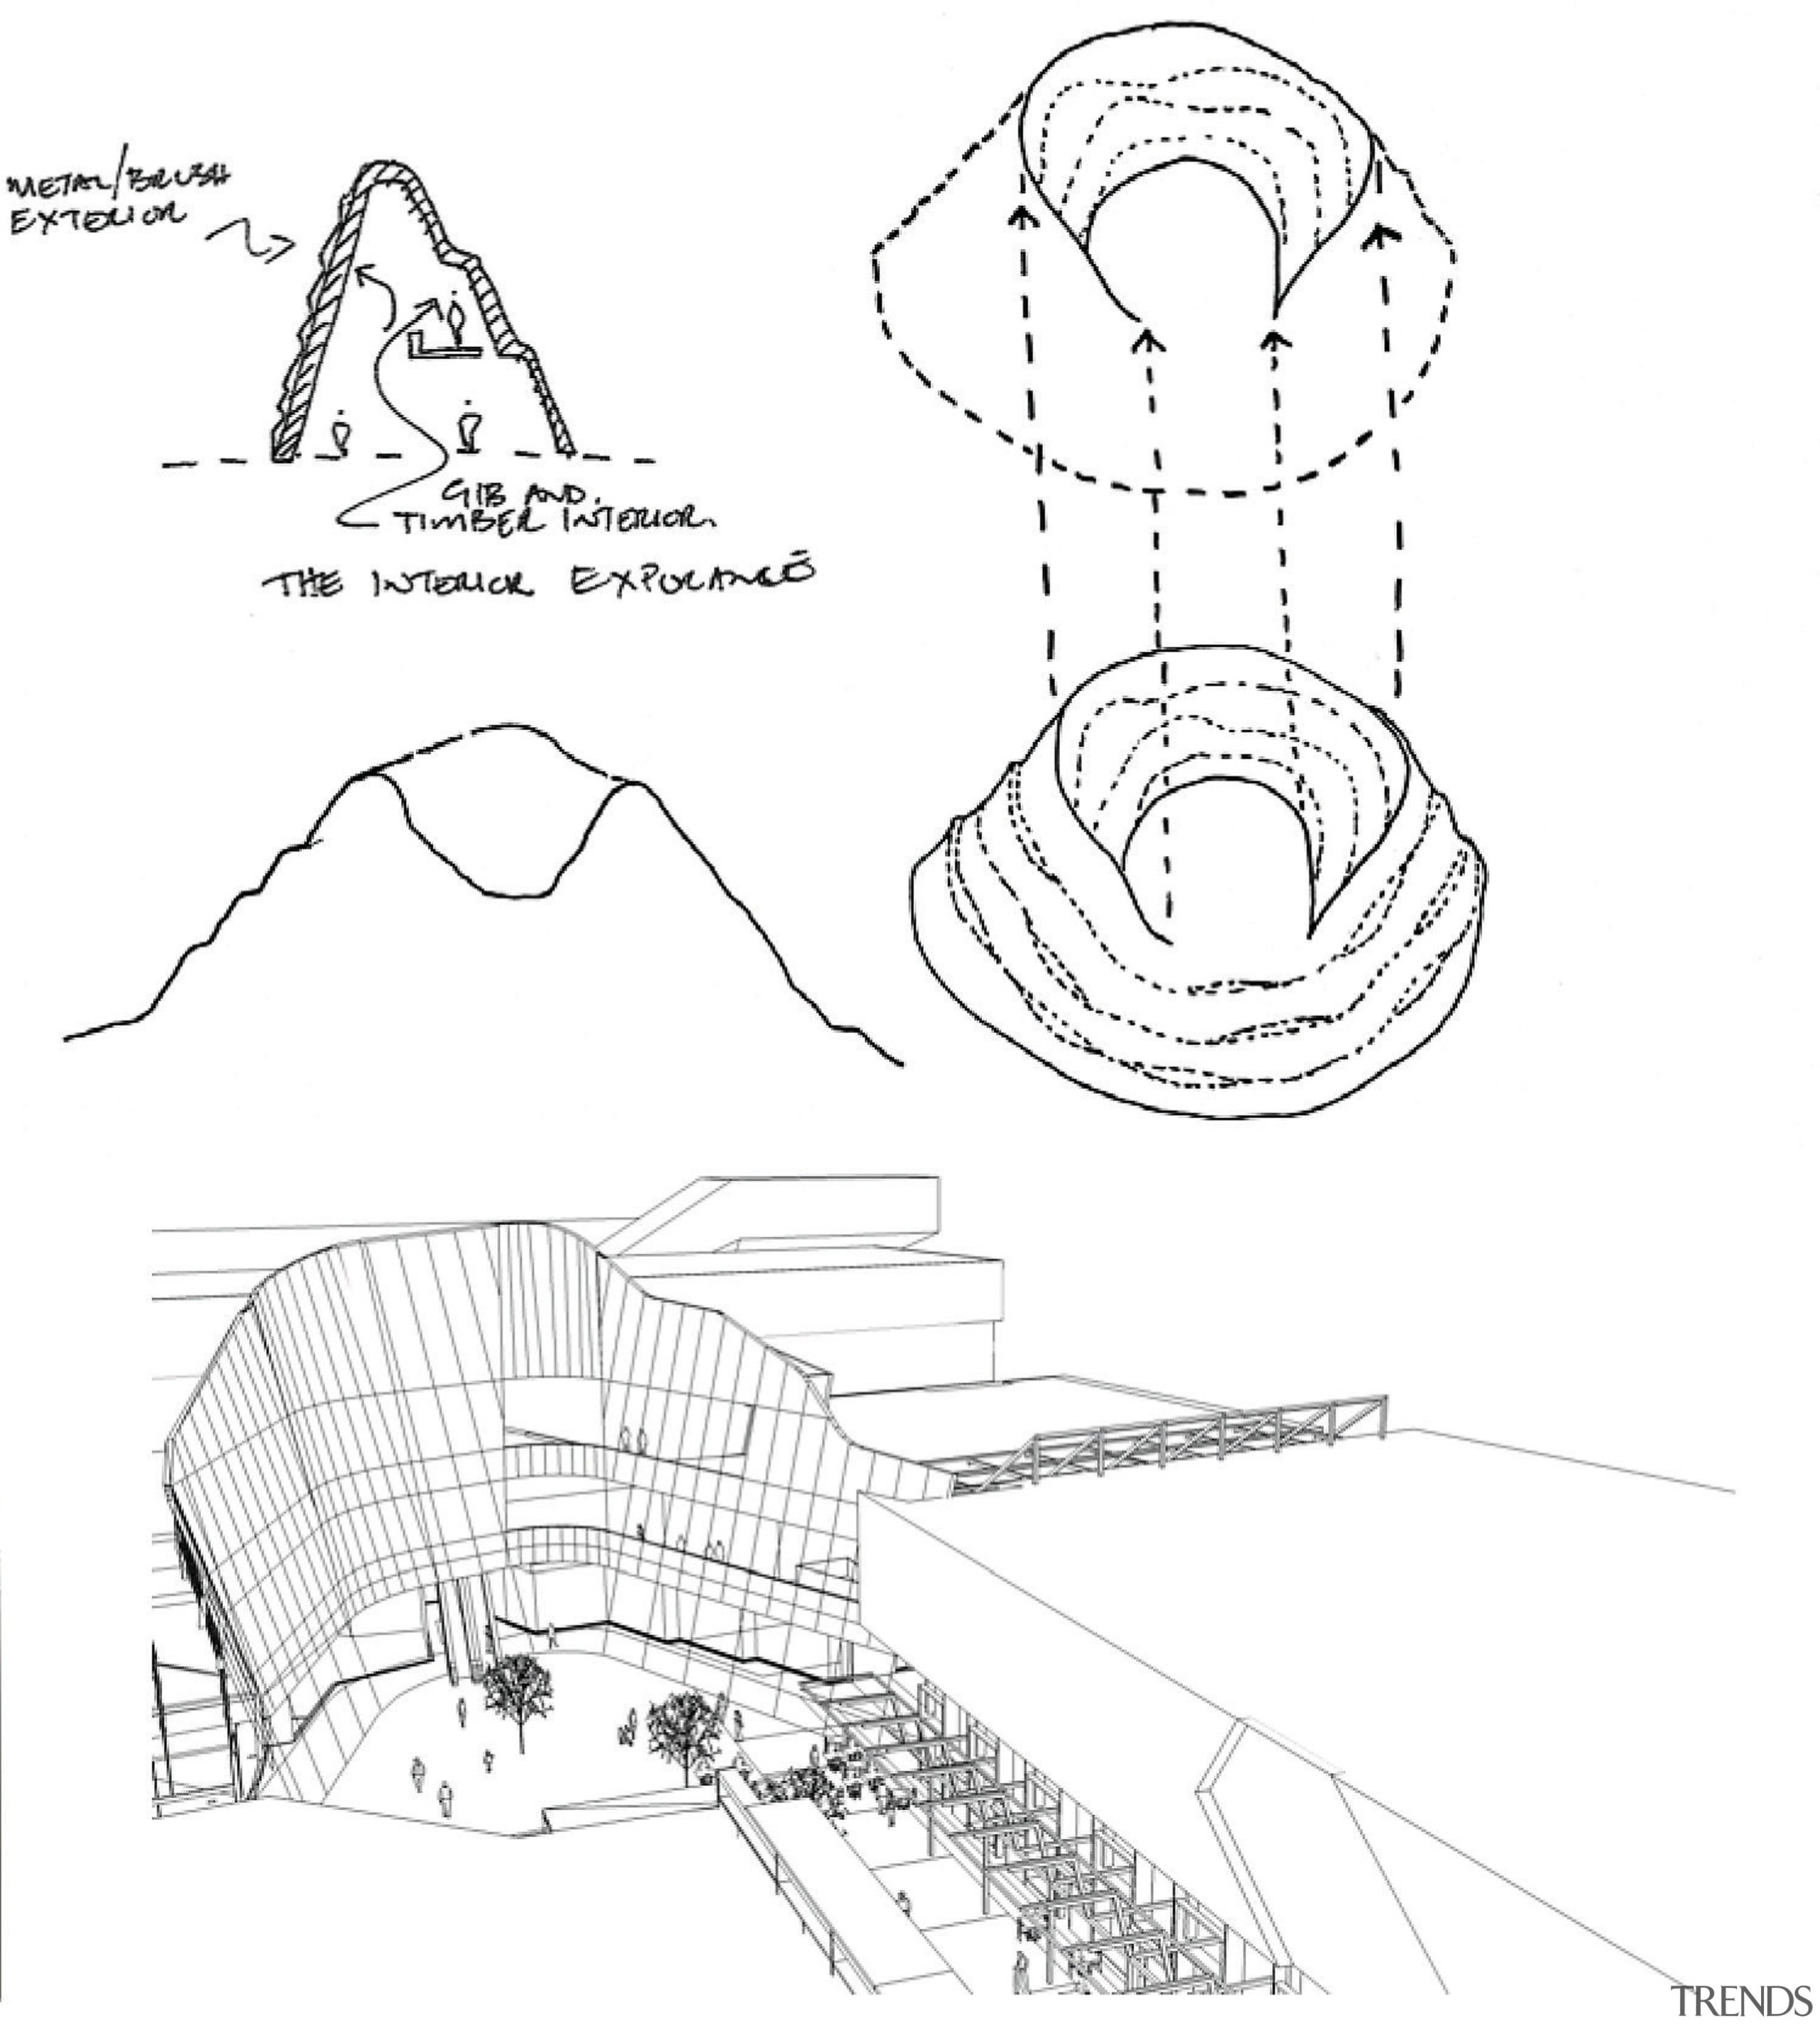 A view of the Sylvia Park shopping complex. angle, area, artwork, black and white, design, diagram, drawing, font, head, line, line art, organism, product, product design, structure, text, white